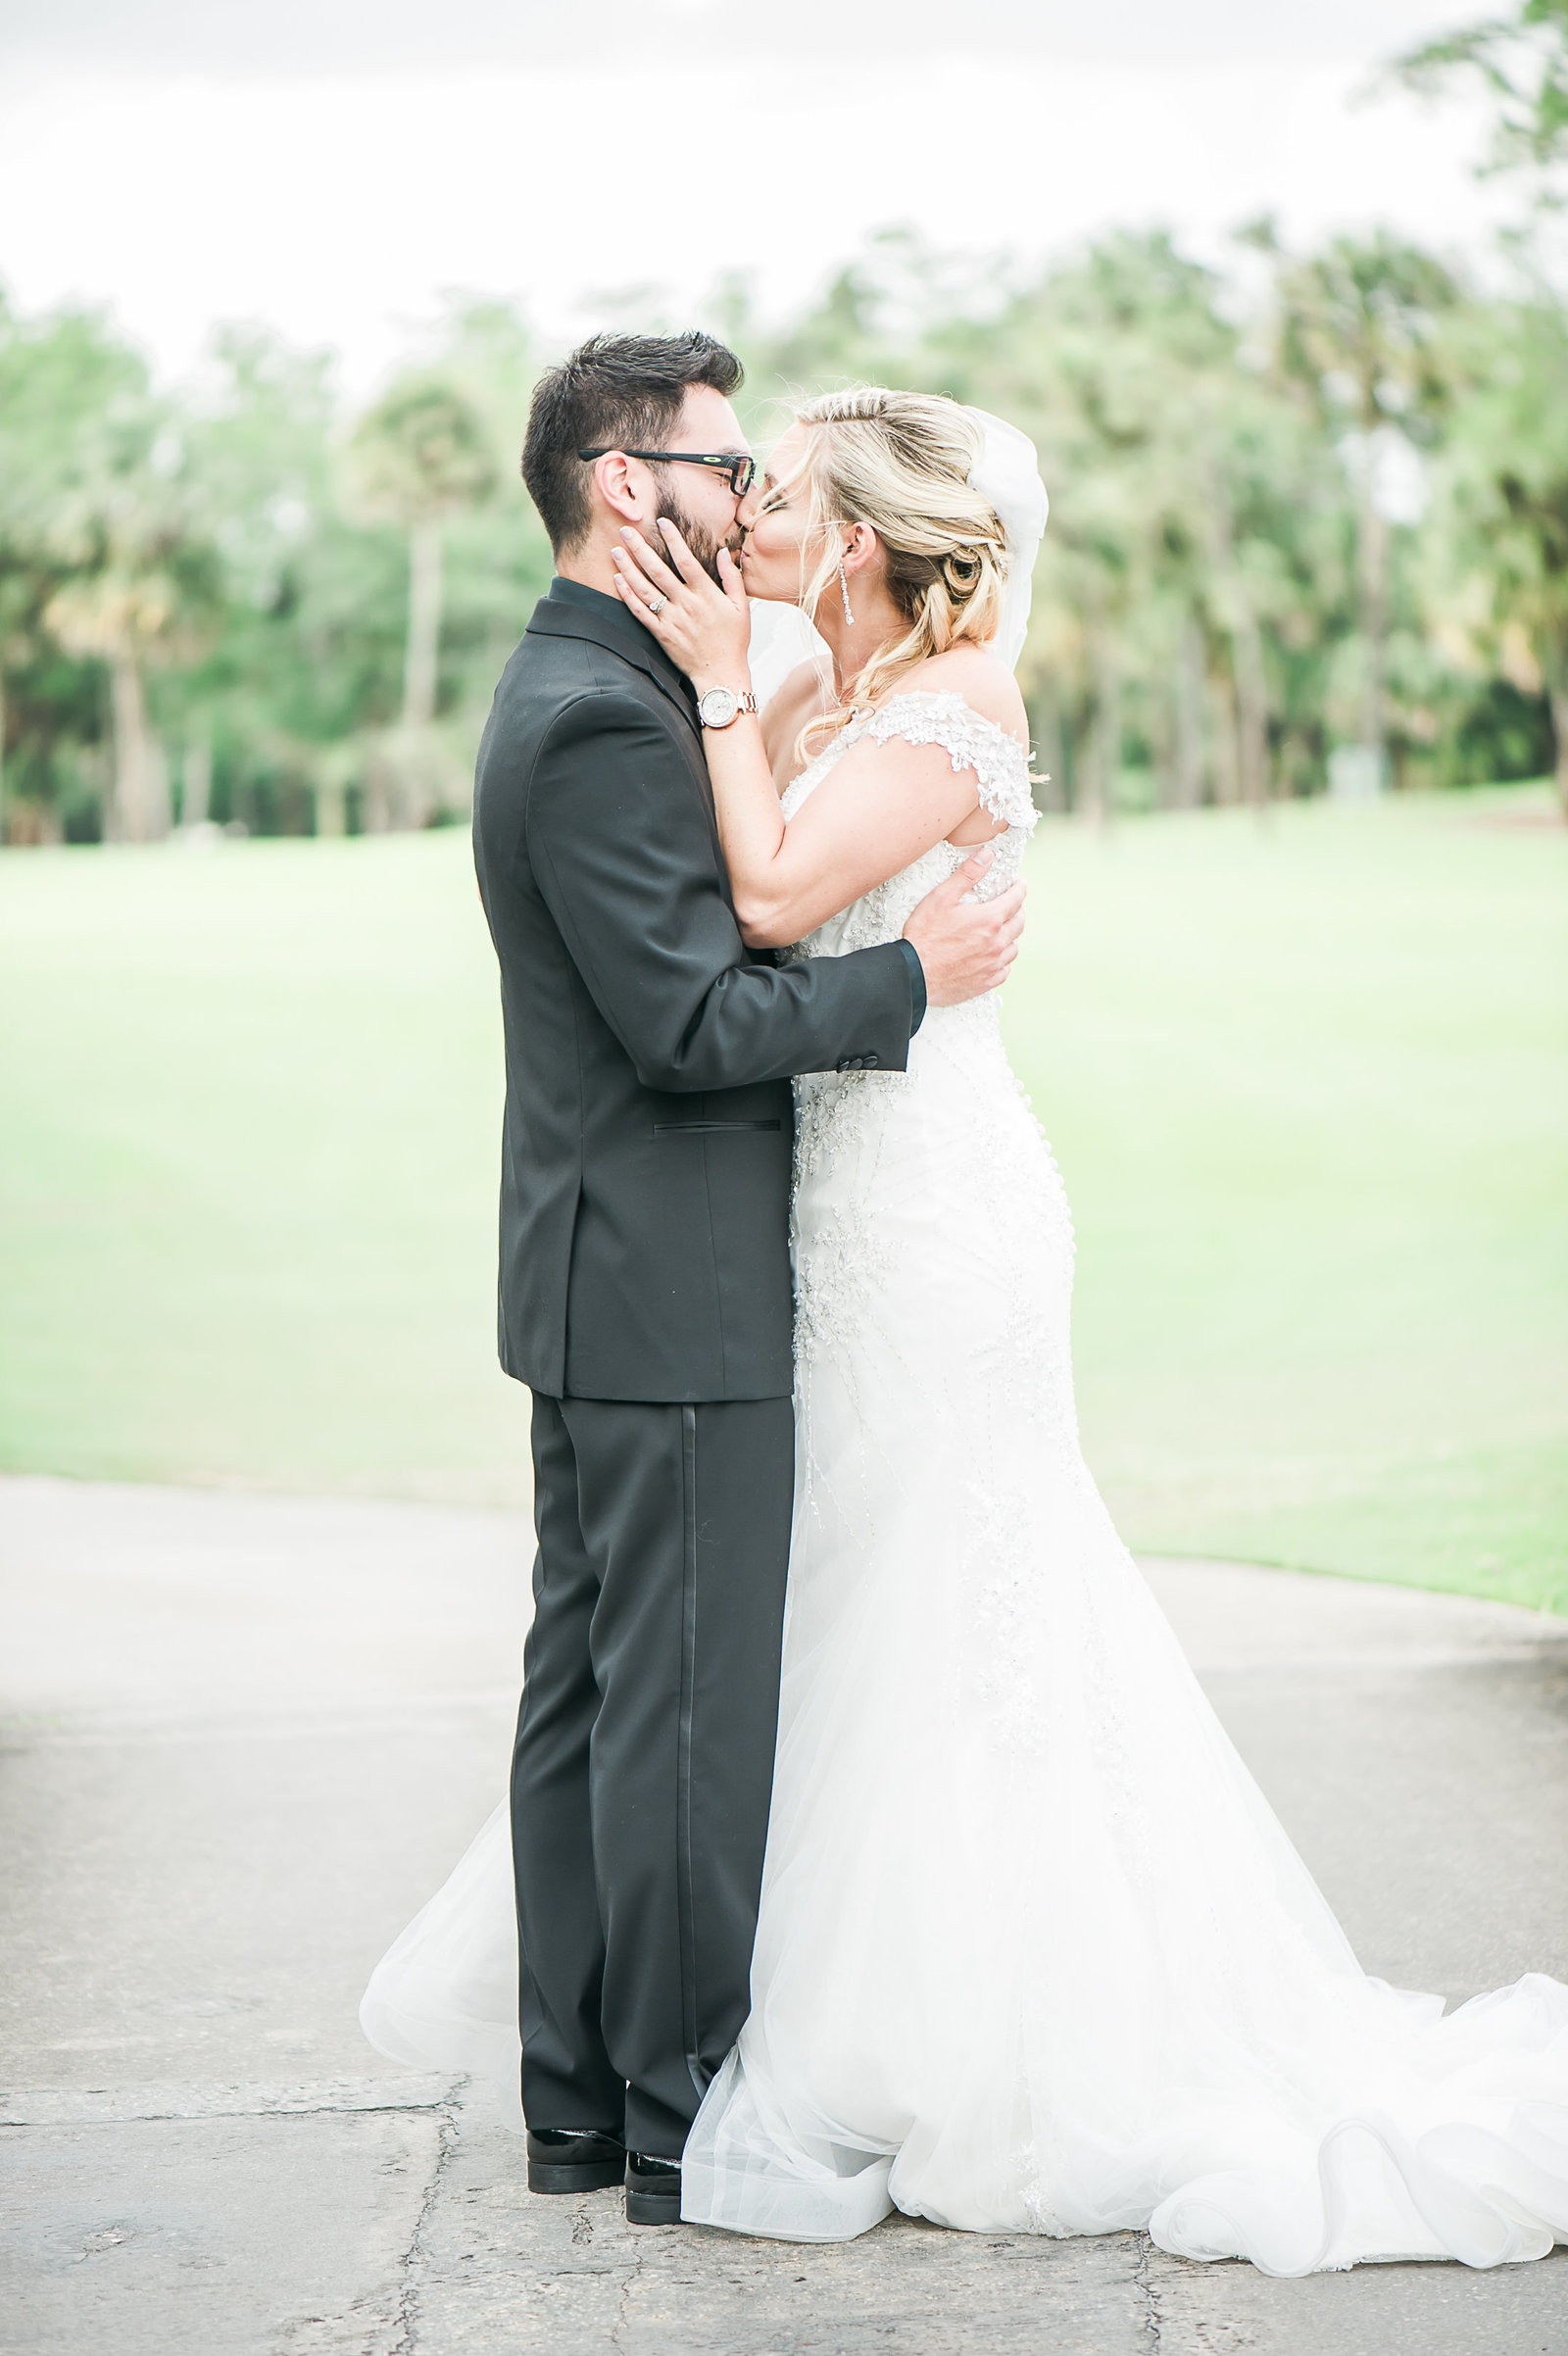 Just Married - Myacoo Country Club Wedding - Palm Beach Wedding Photography by Palm Beach Photography, Inc.